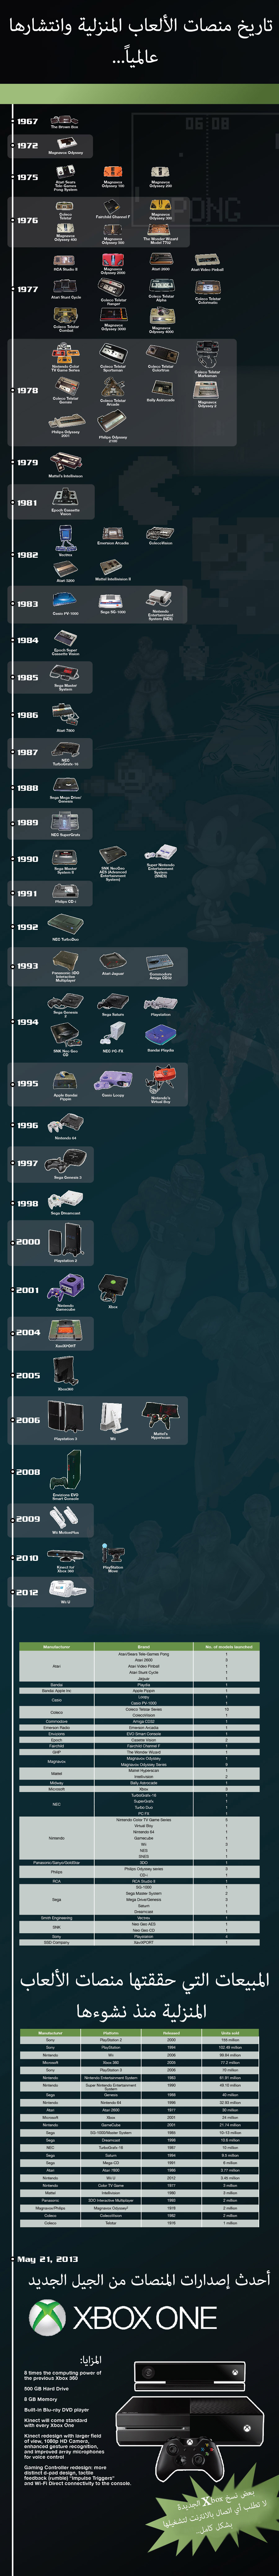 Evolution of Gaming Consoles_New XBox Launch